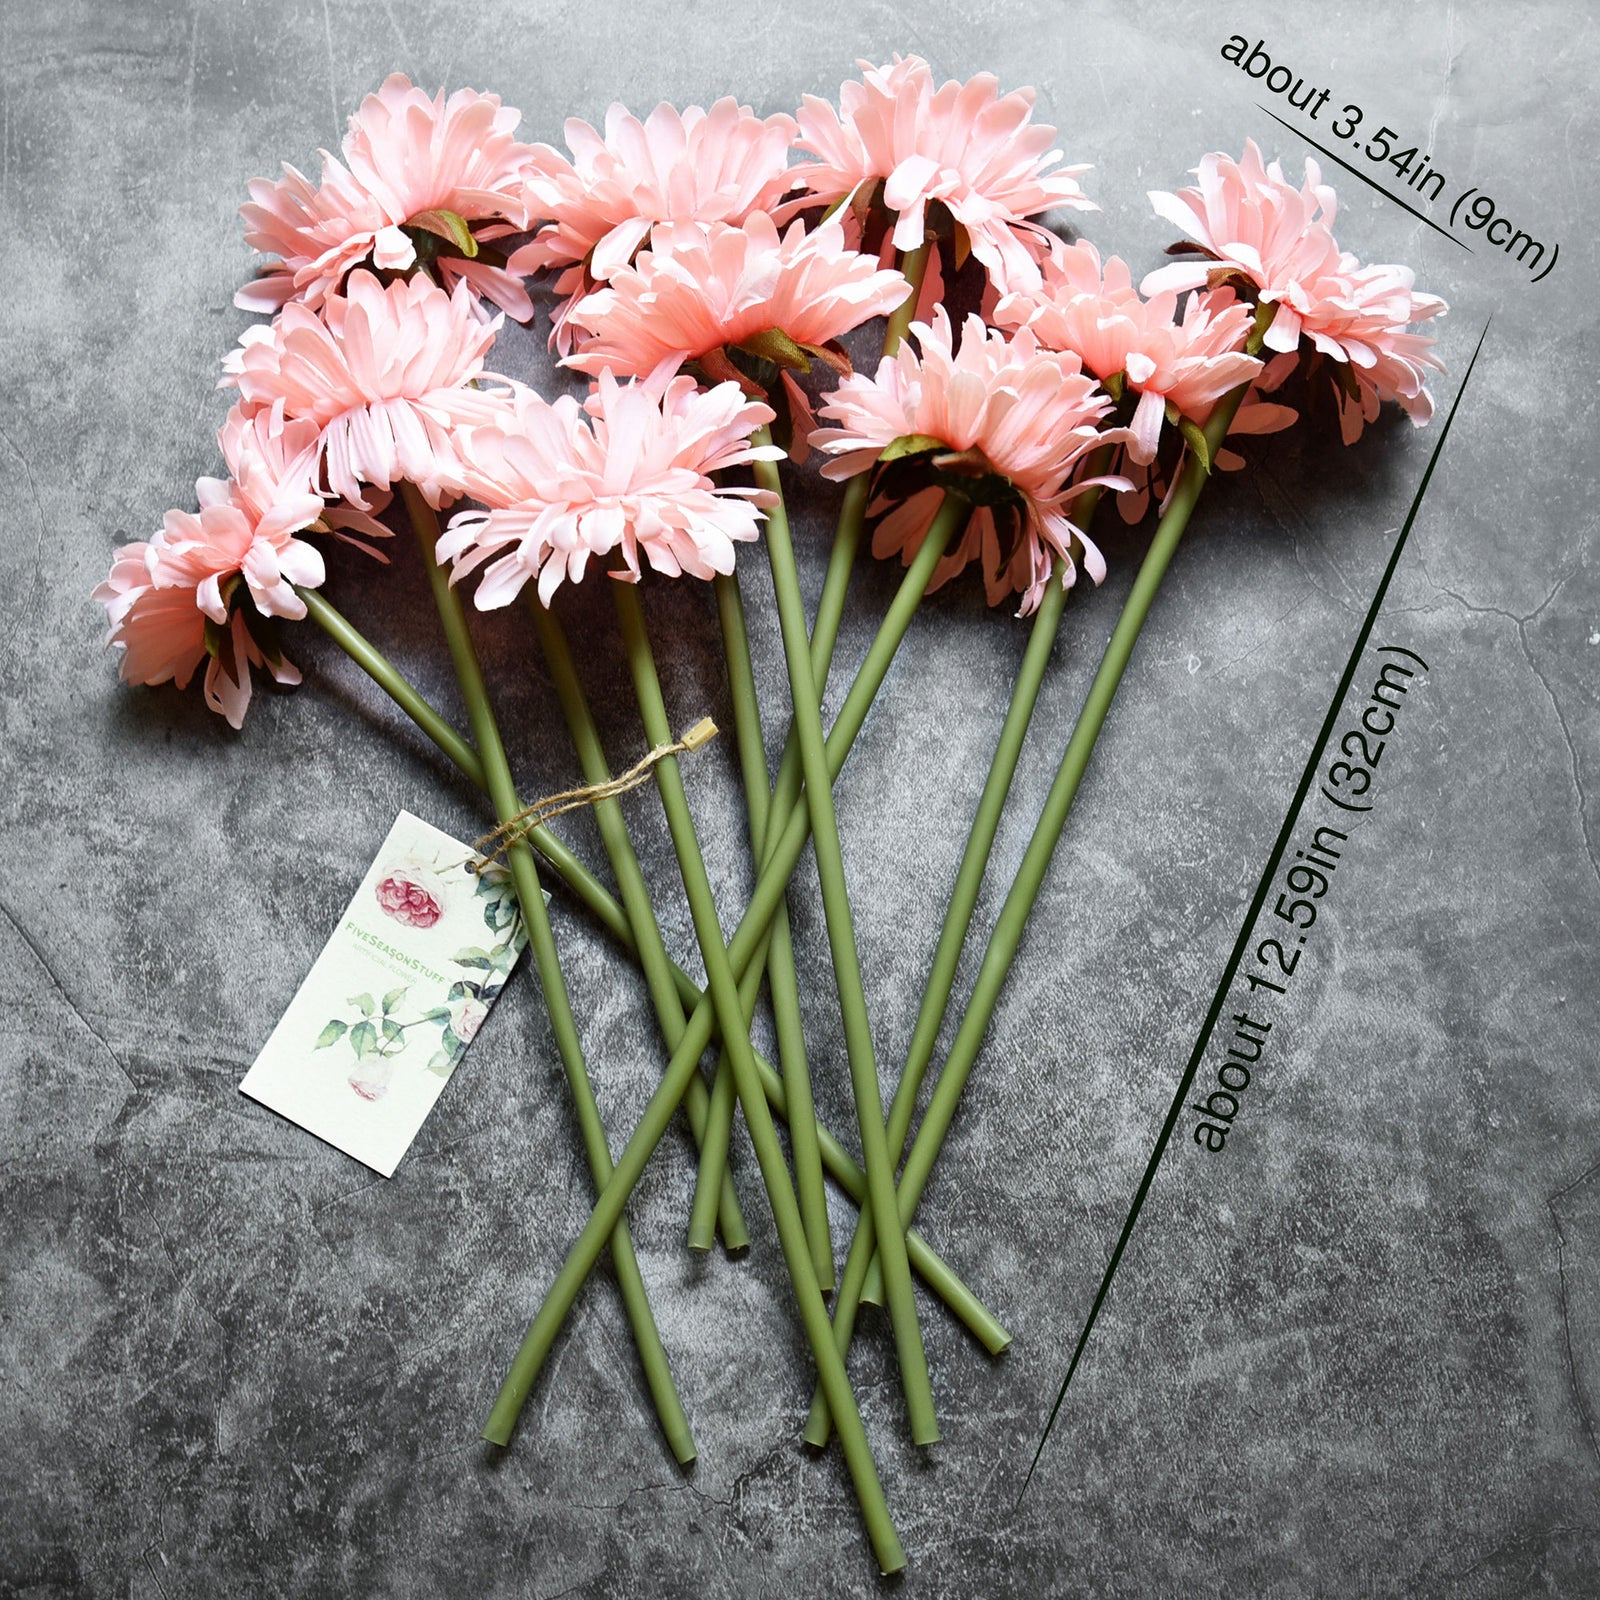 FiveSeasonStuff 10 Stems of Artificial Silk Gerbera Flowers & Bouquet, for Home Décor/DIY Flower Arrangement Decoration, 32cm (12.6 inches)